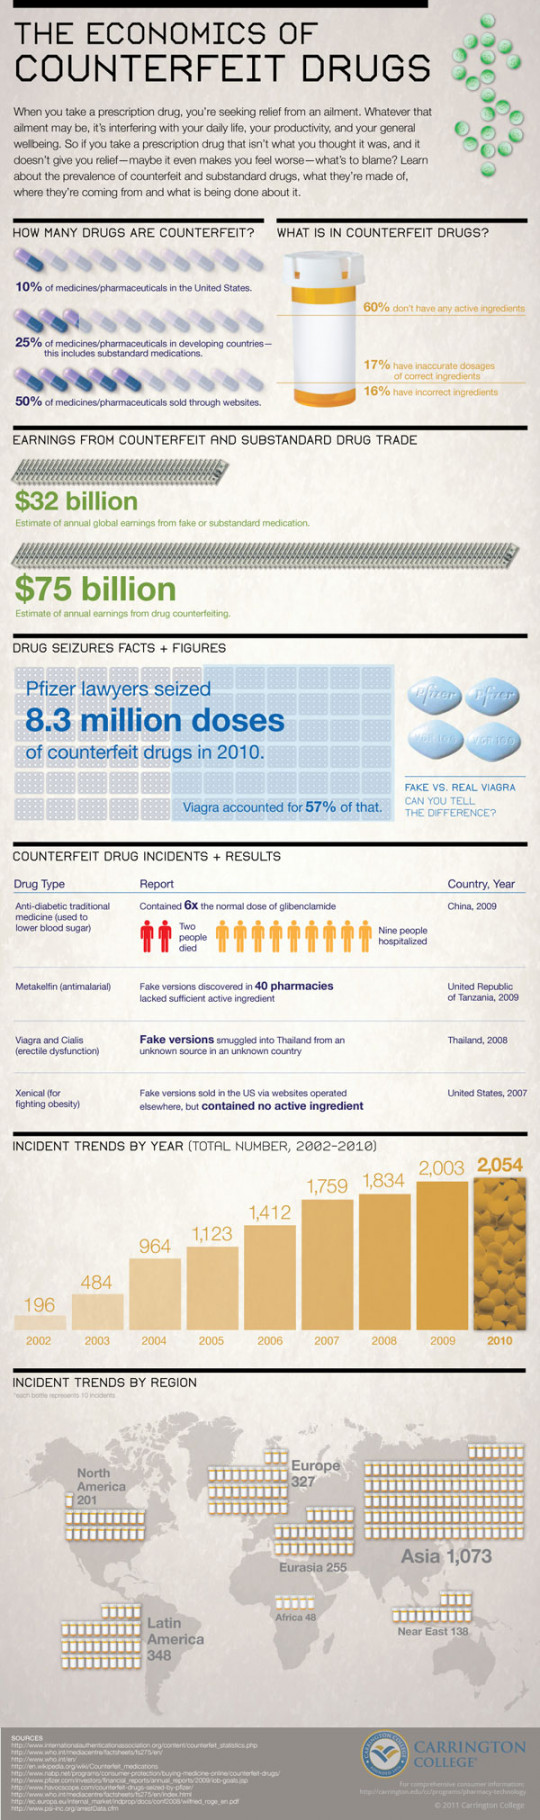 The Economics of Counterfeit Drugs